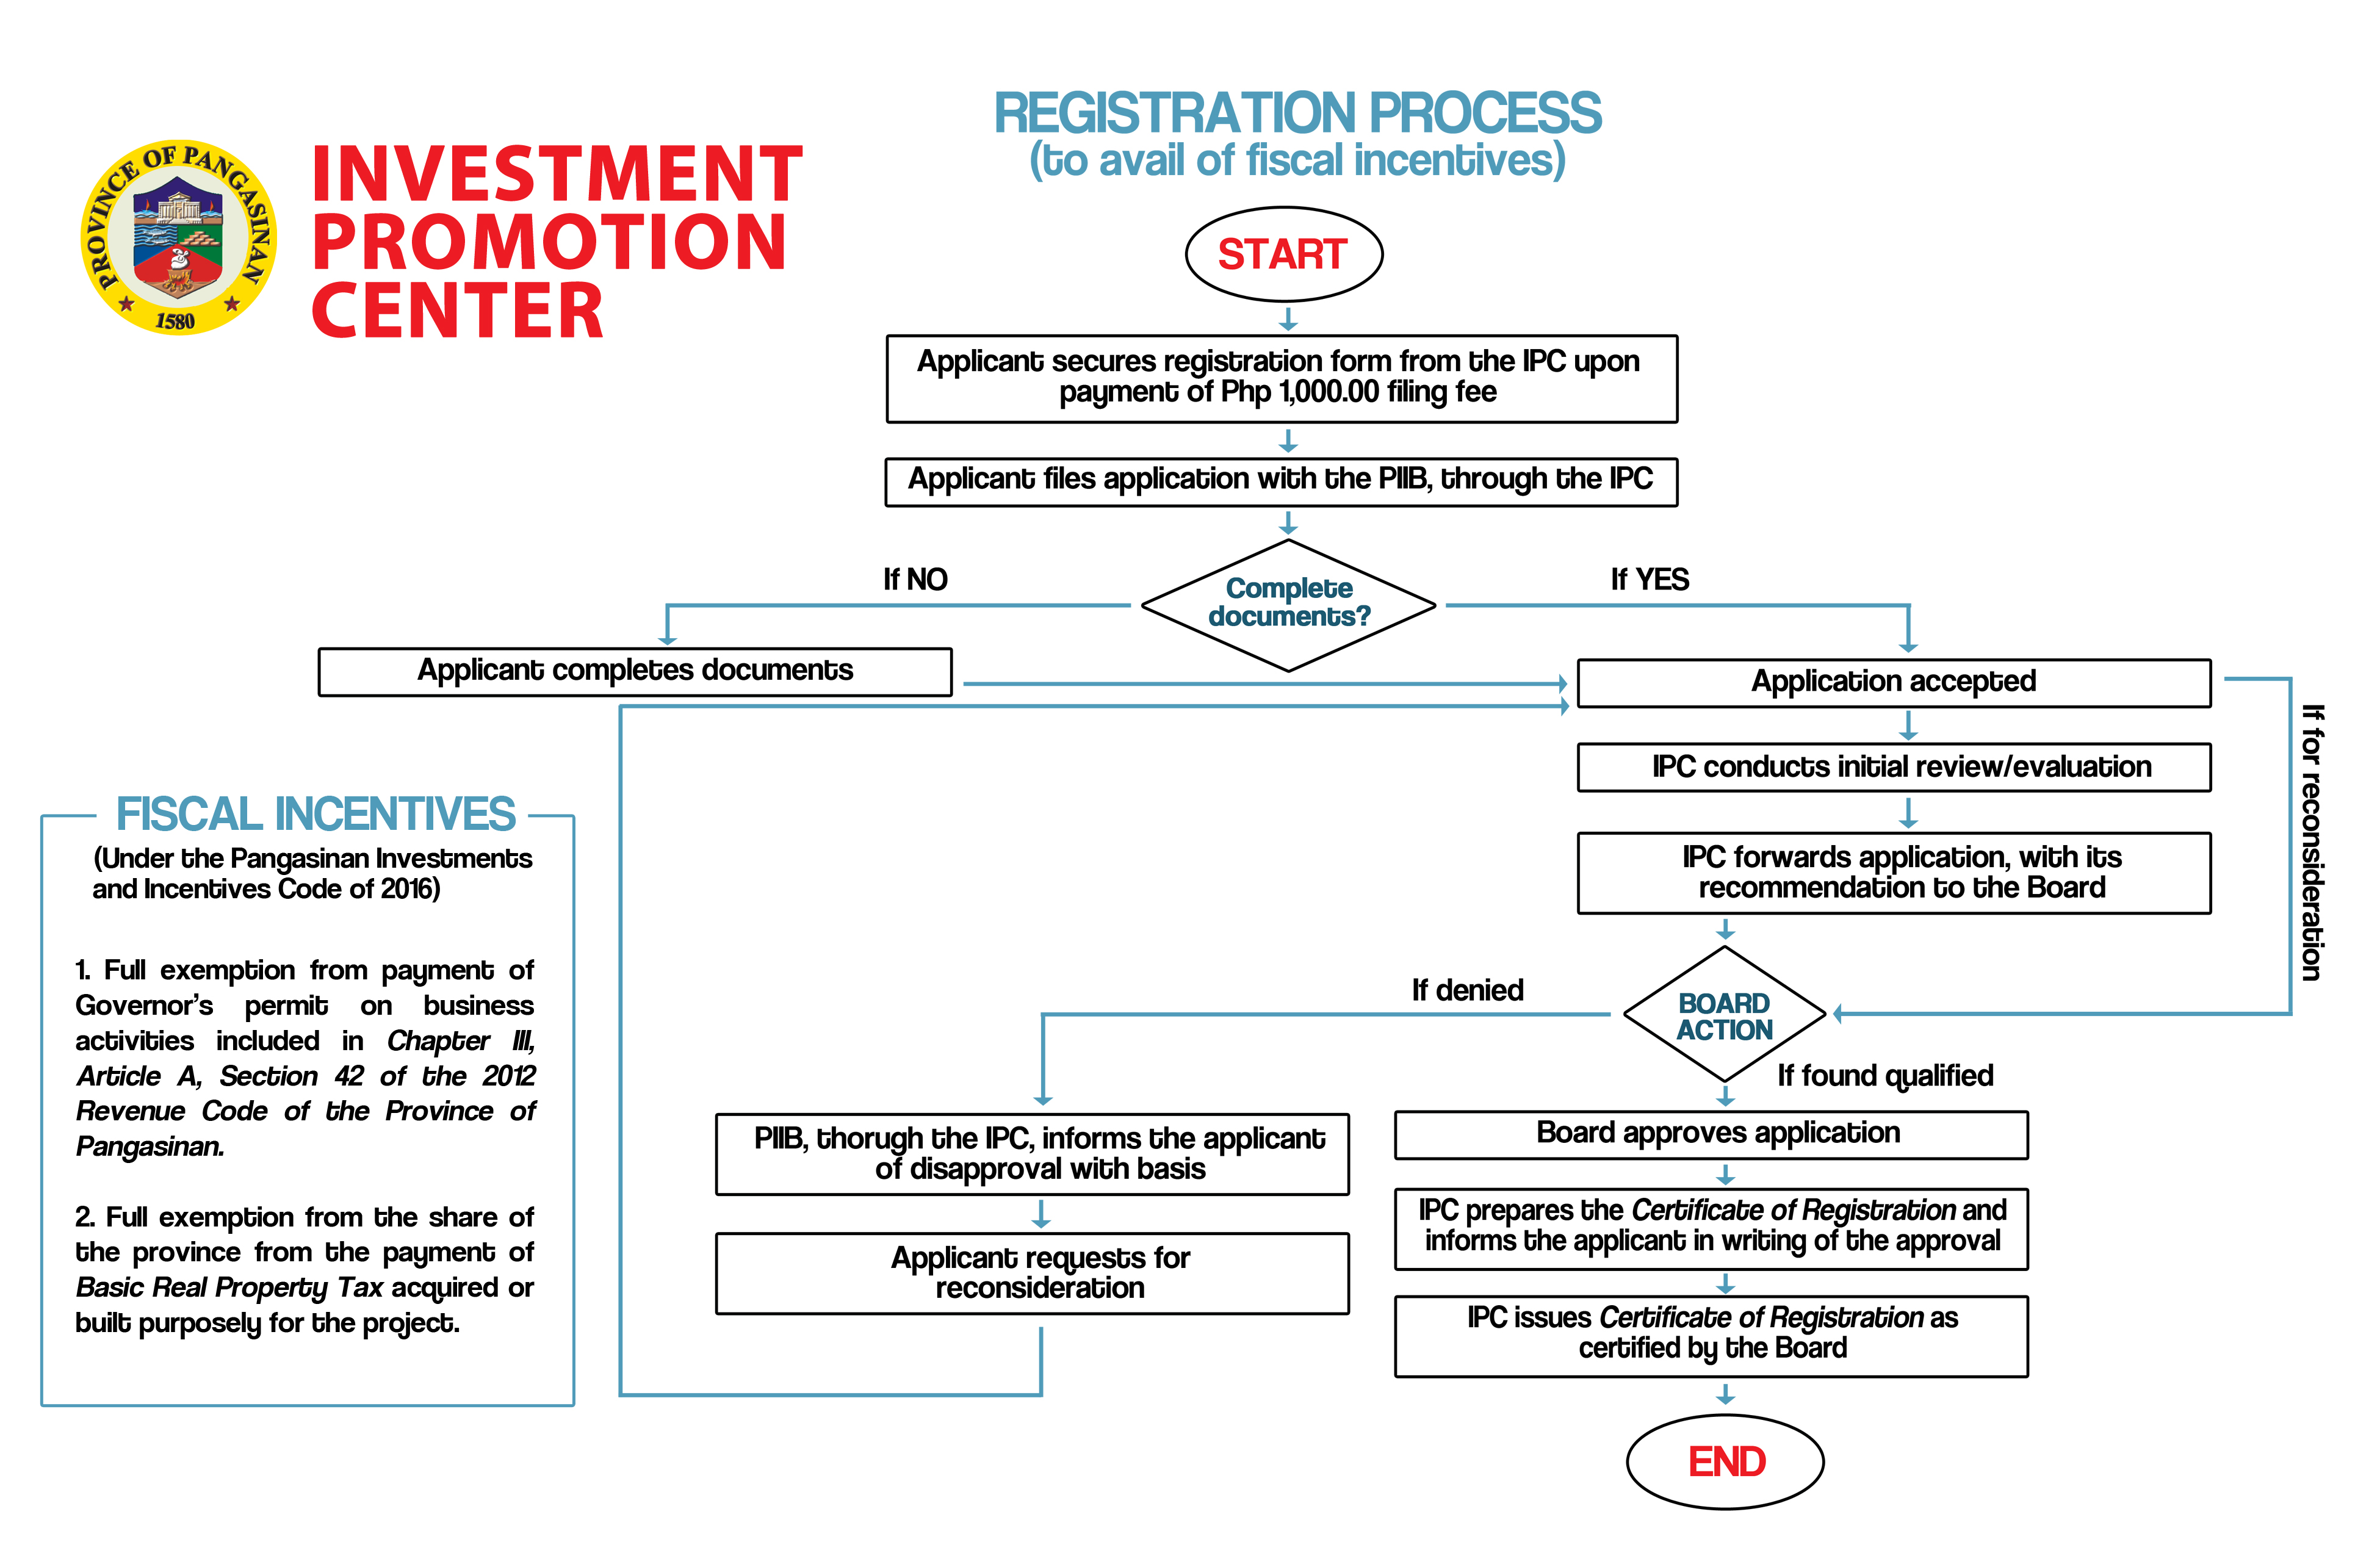 investment promotion center registration process long coupon